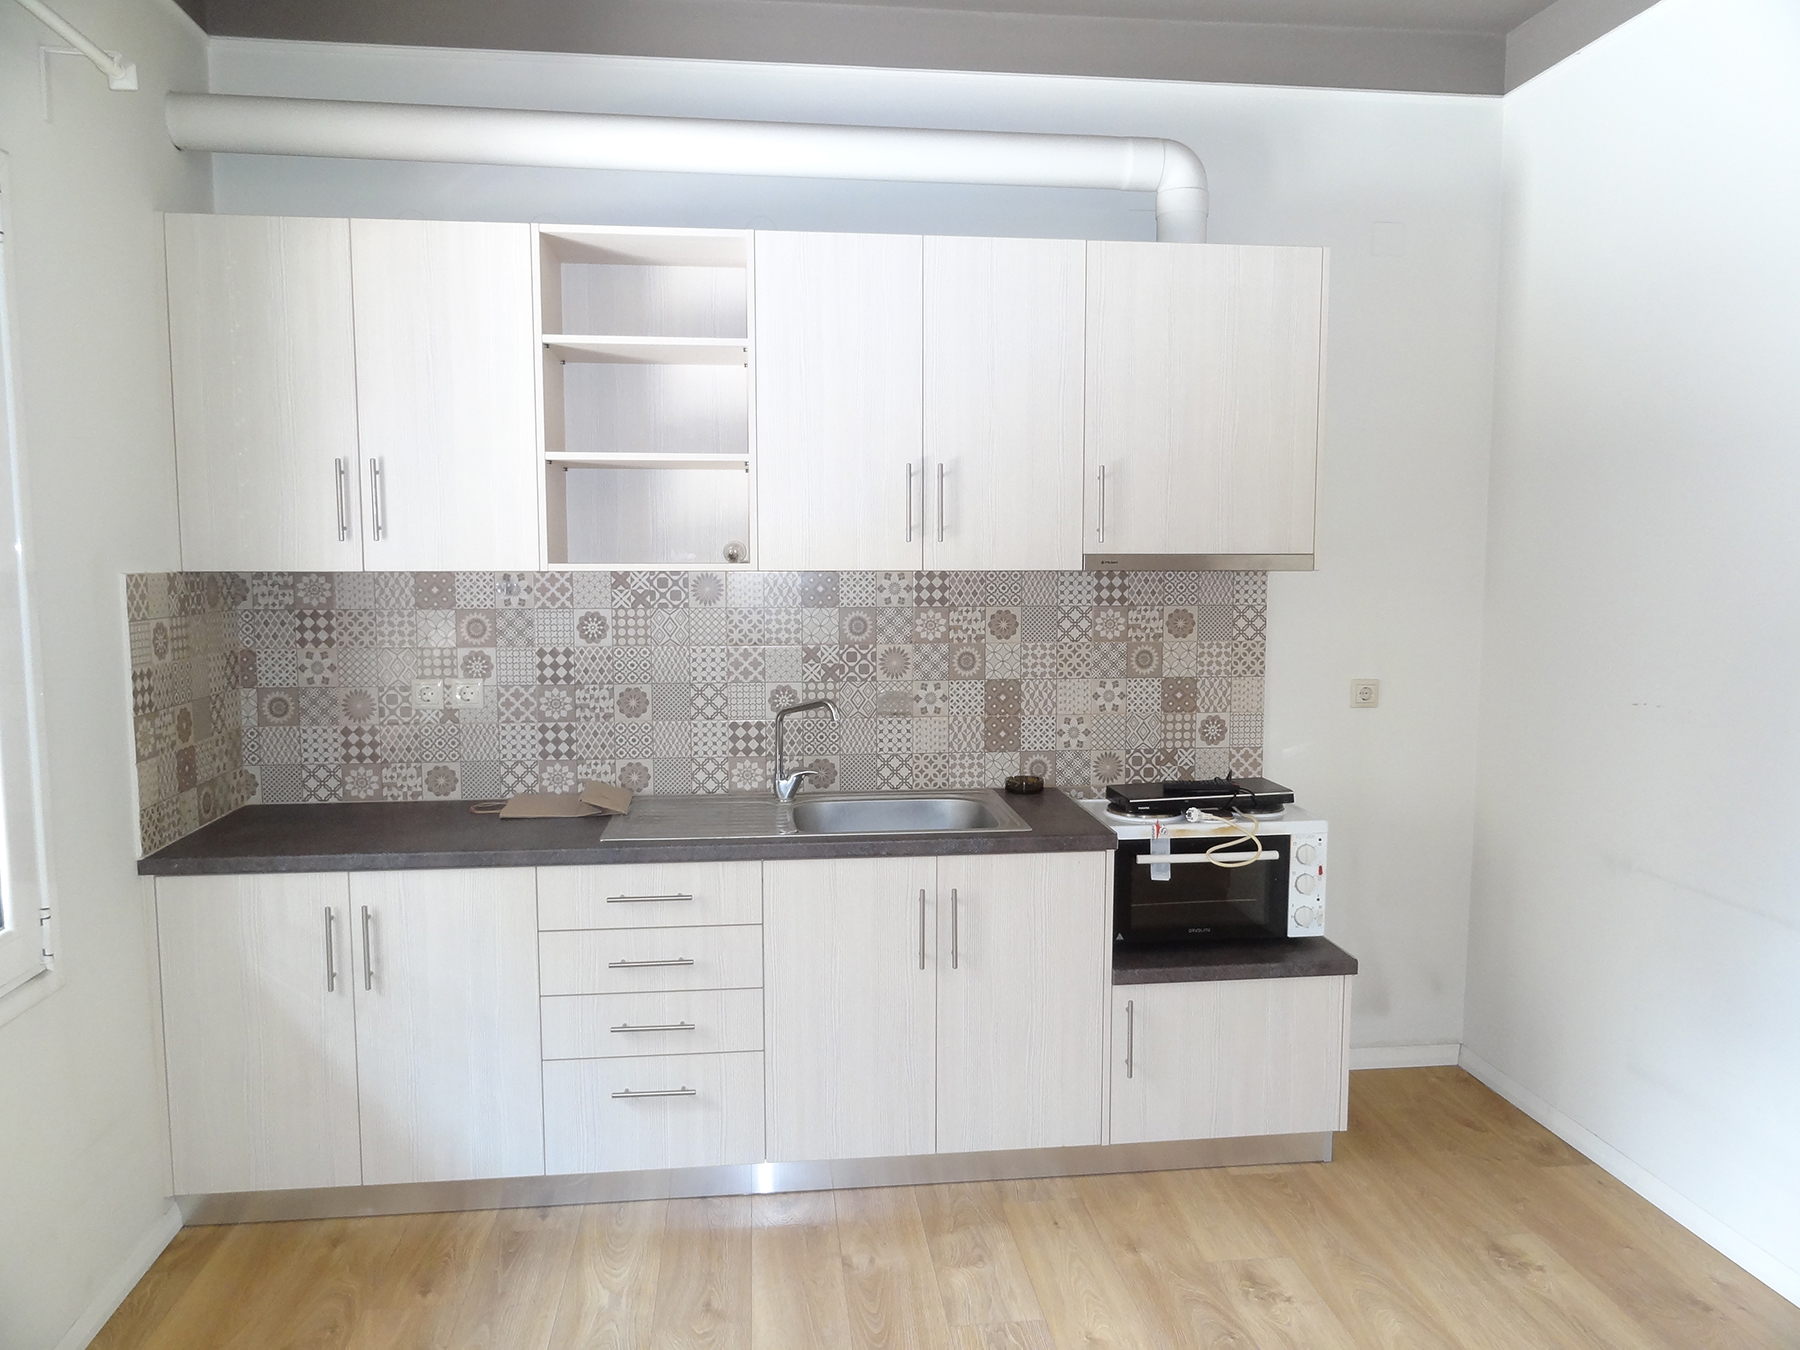 For rent renovated 1 bedroom apartment of 41 sq.m. 1st floor near the Zosimaia school in Ioannina